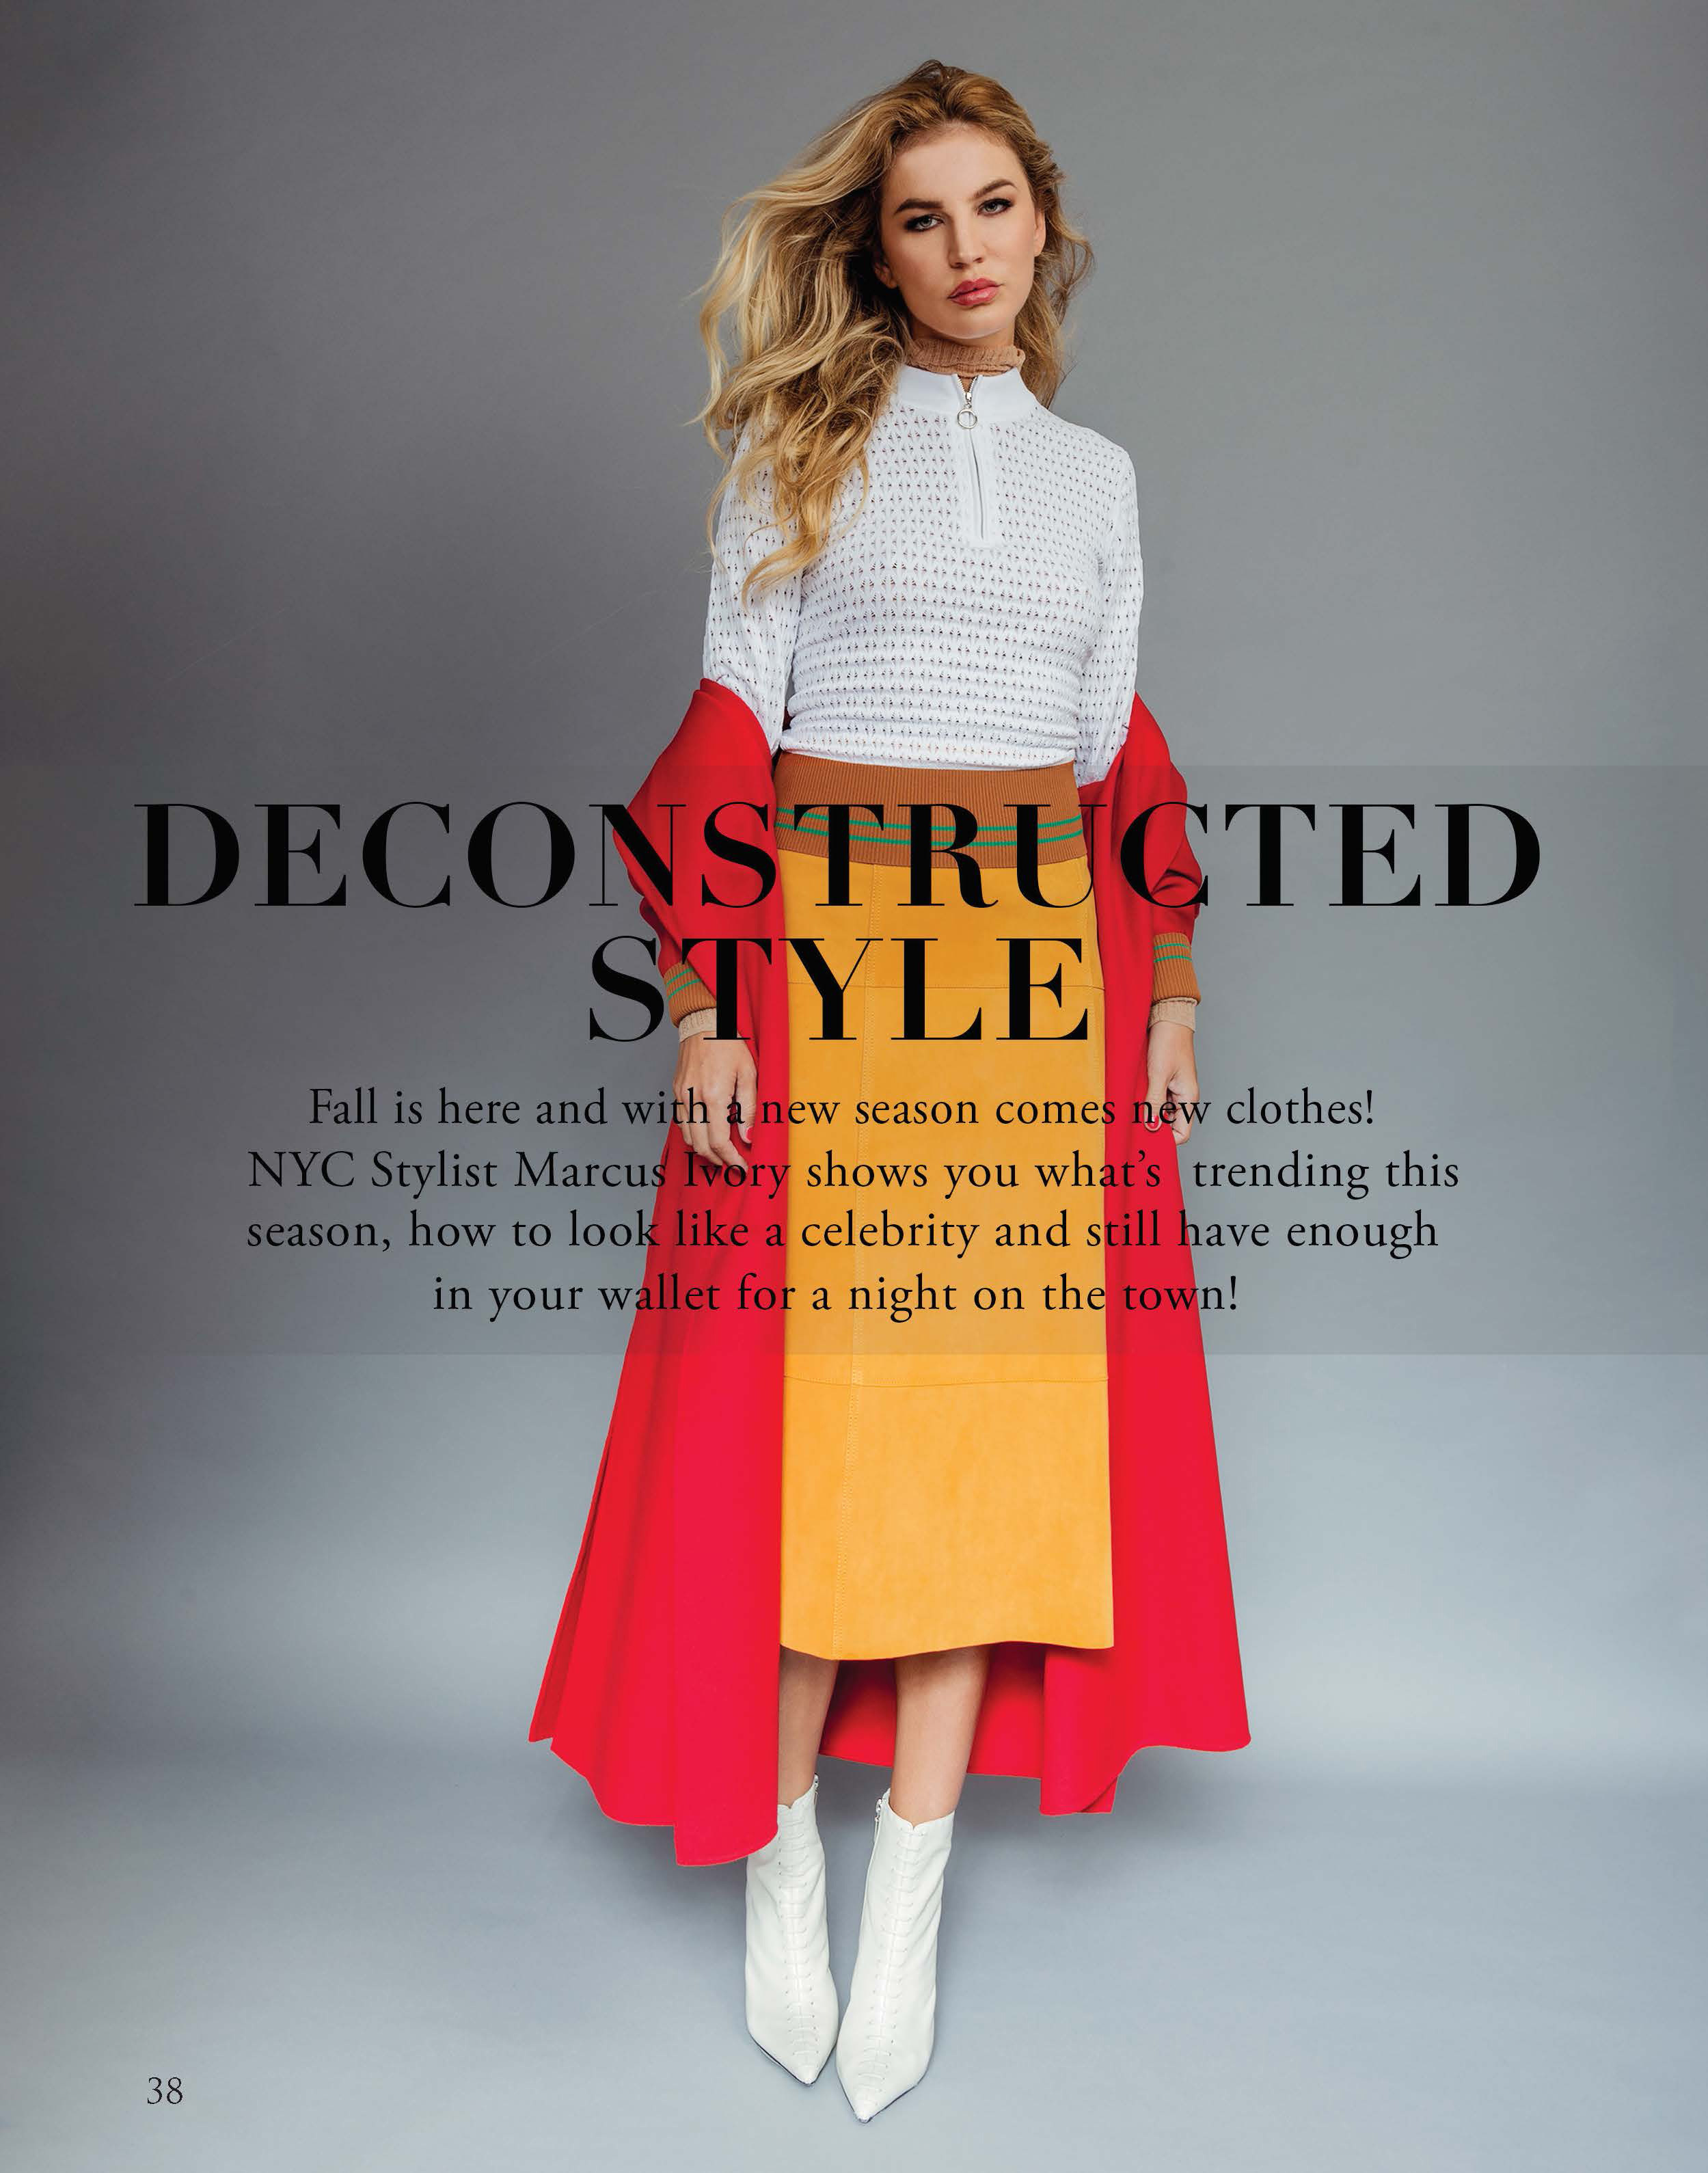 WOMENS-pdf-SEPT-21-pages_Page_40.jpg